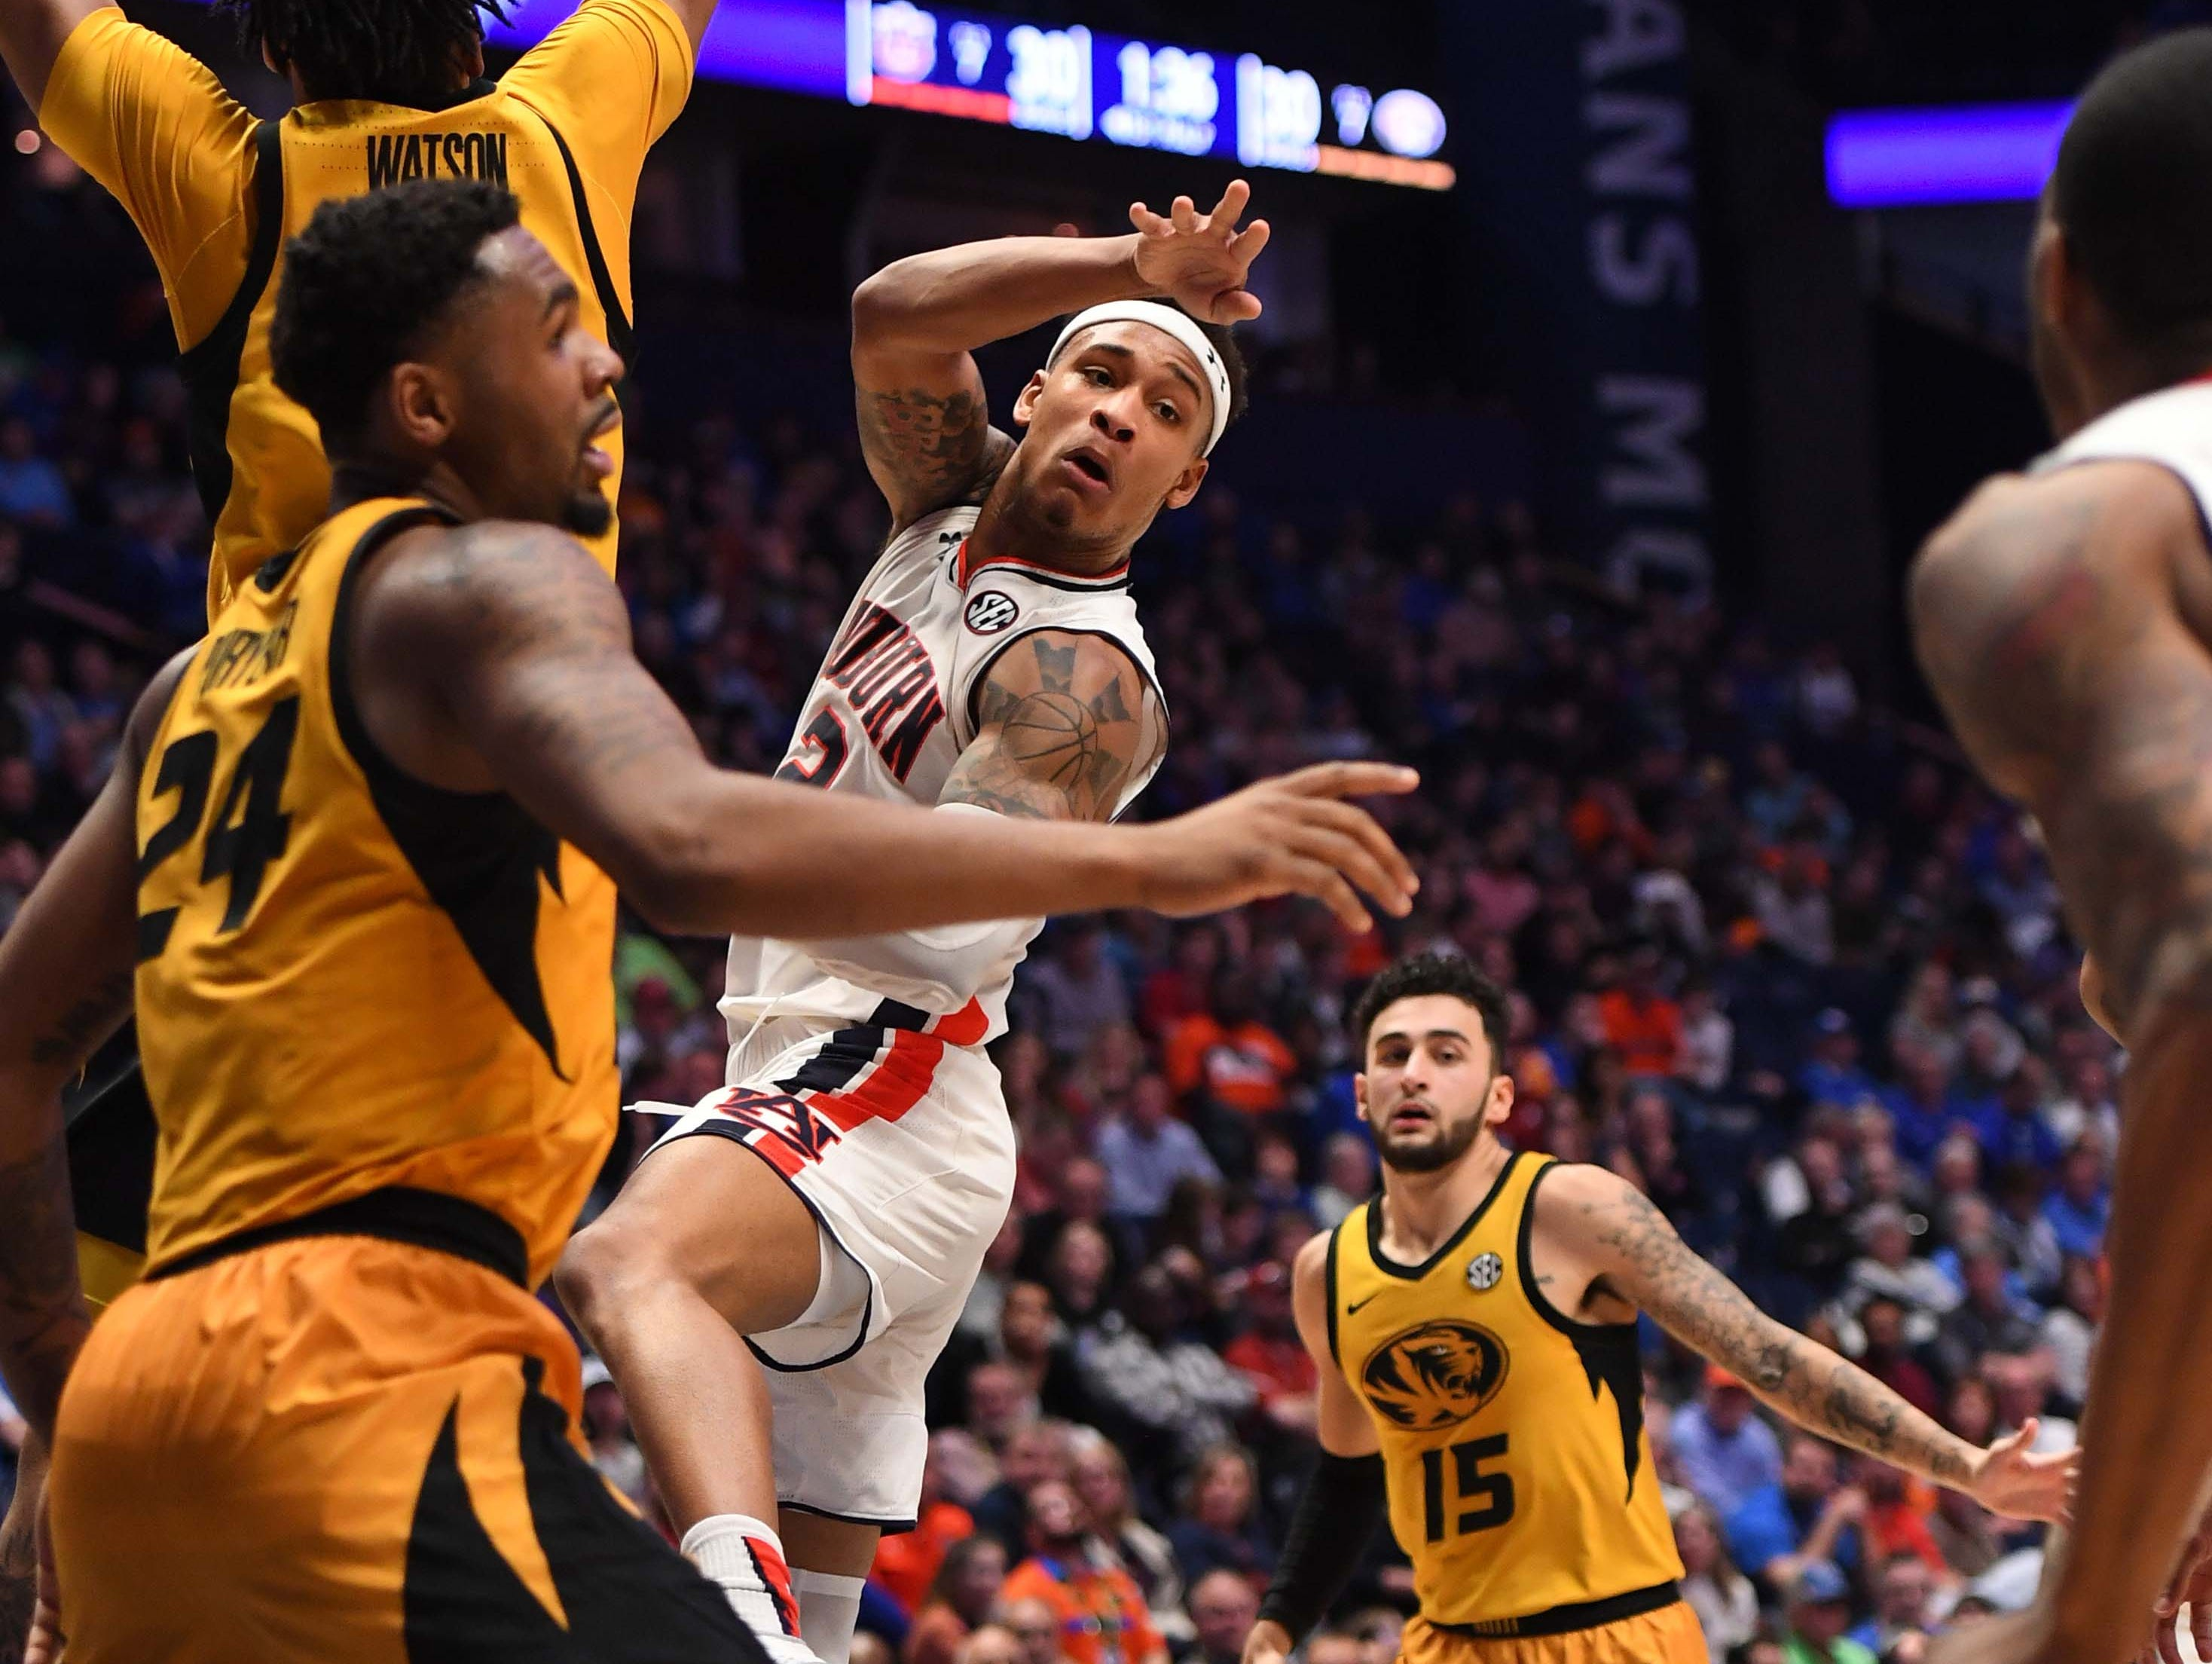 Mar 14, 2019; Nashville, TN, USA; Auburn Tigers guard Bryce Brown (2) passes the ball to the corner on a play against the Missouri Tigers during the first half of the SEC conference tournament at Bridgestone Arena. Mandatory Credit: Christopher Hanewinckel-USA TODAY Sports